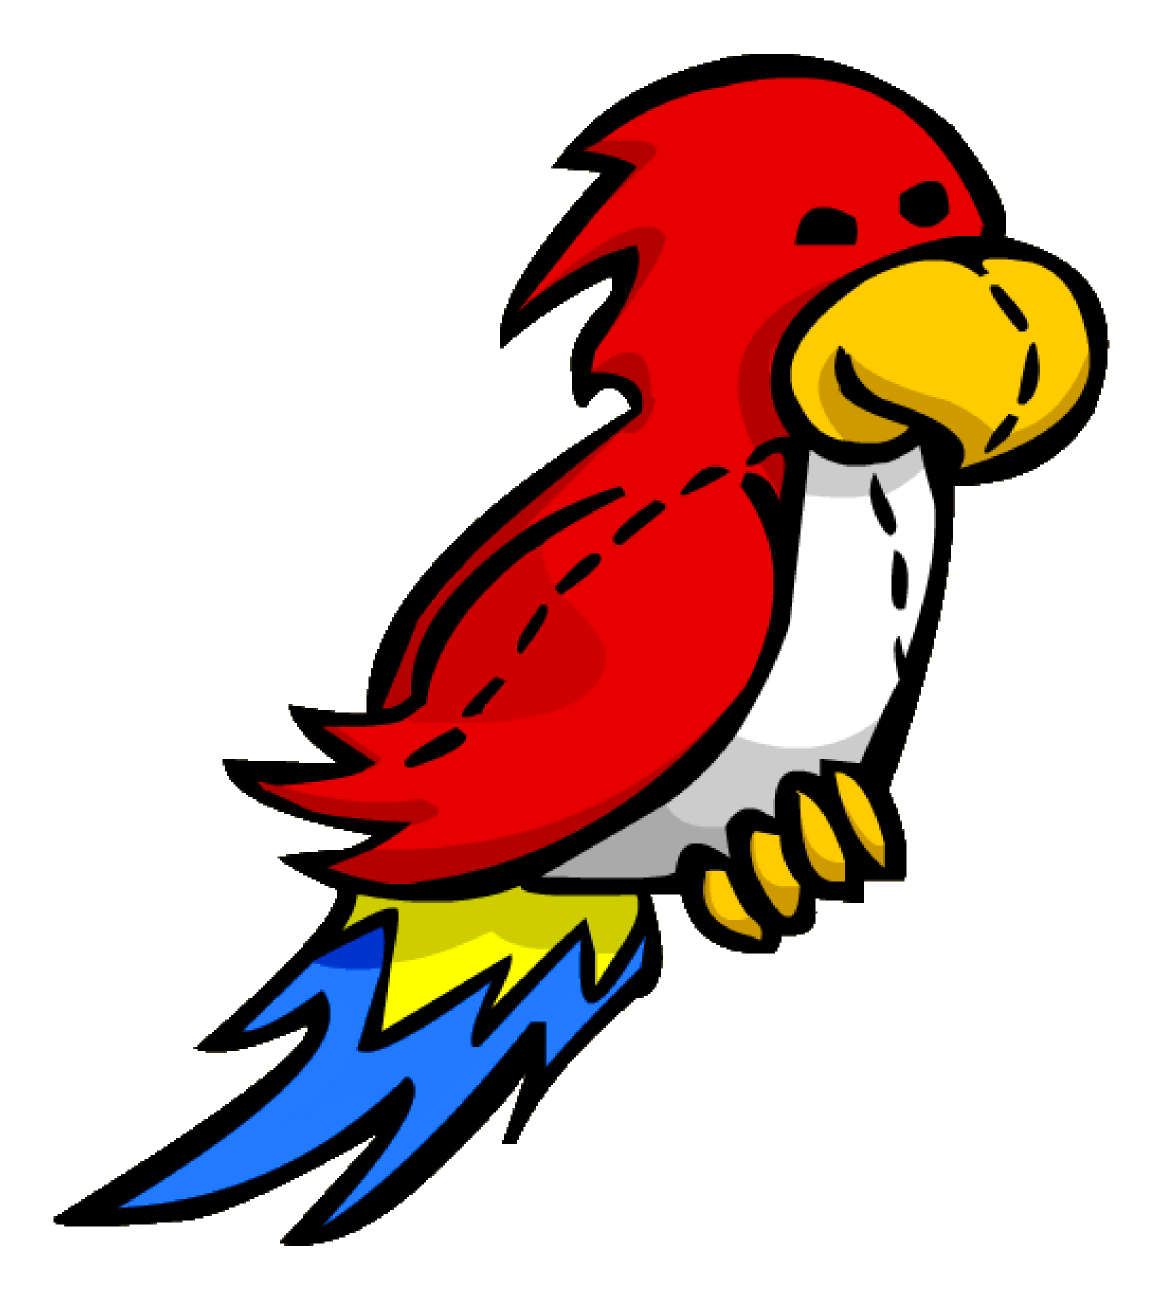 Parrot clipart shadow. Image pin icon png